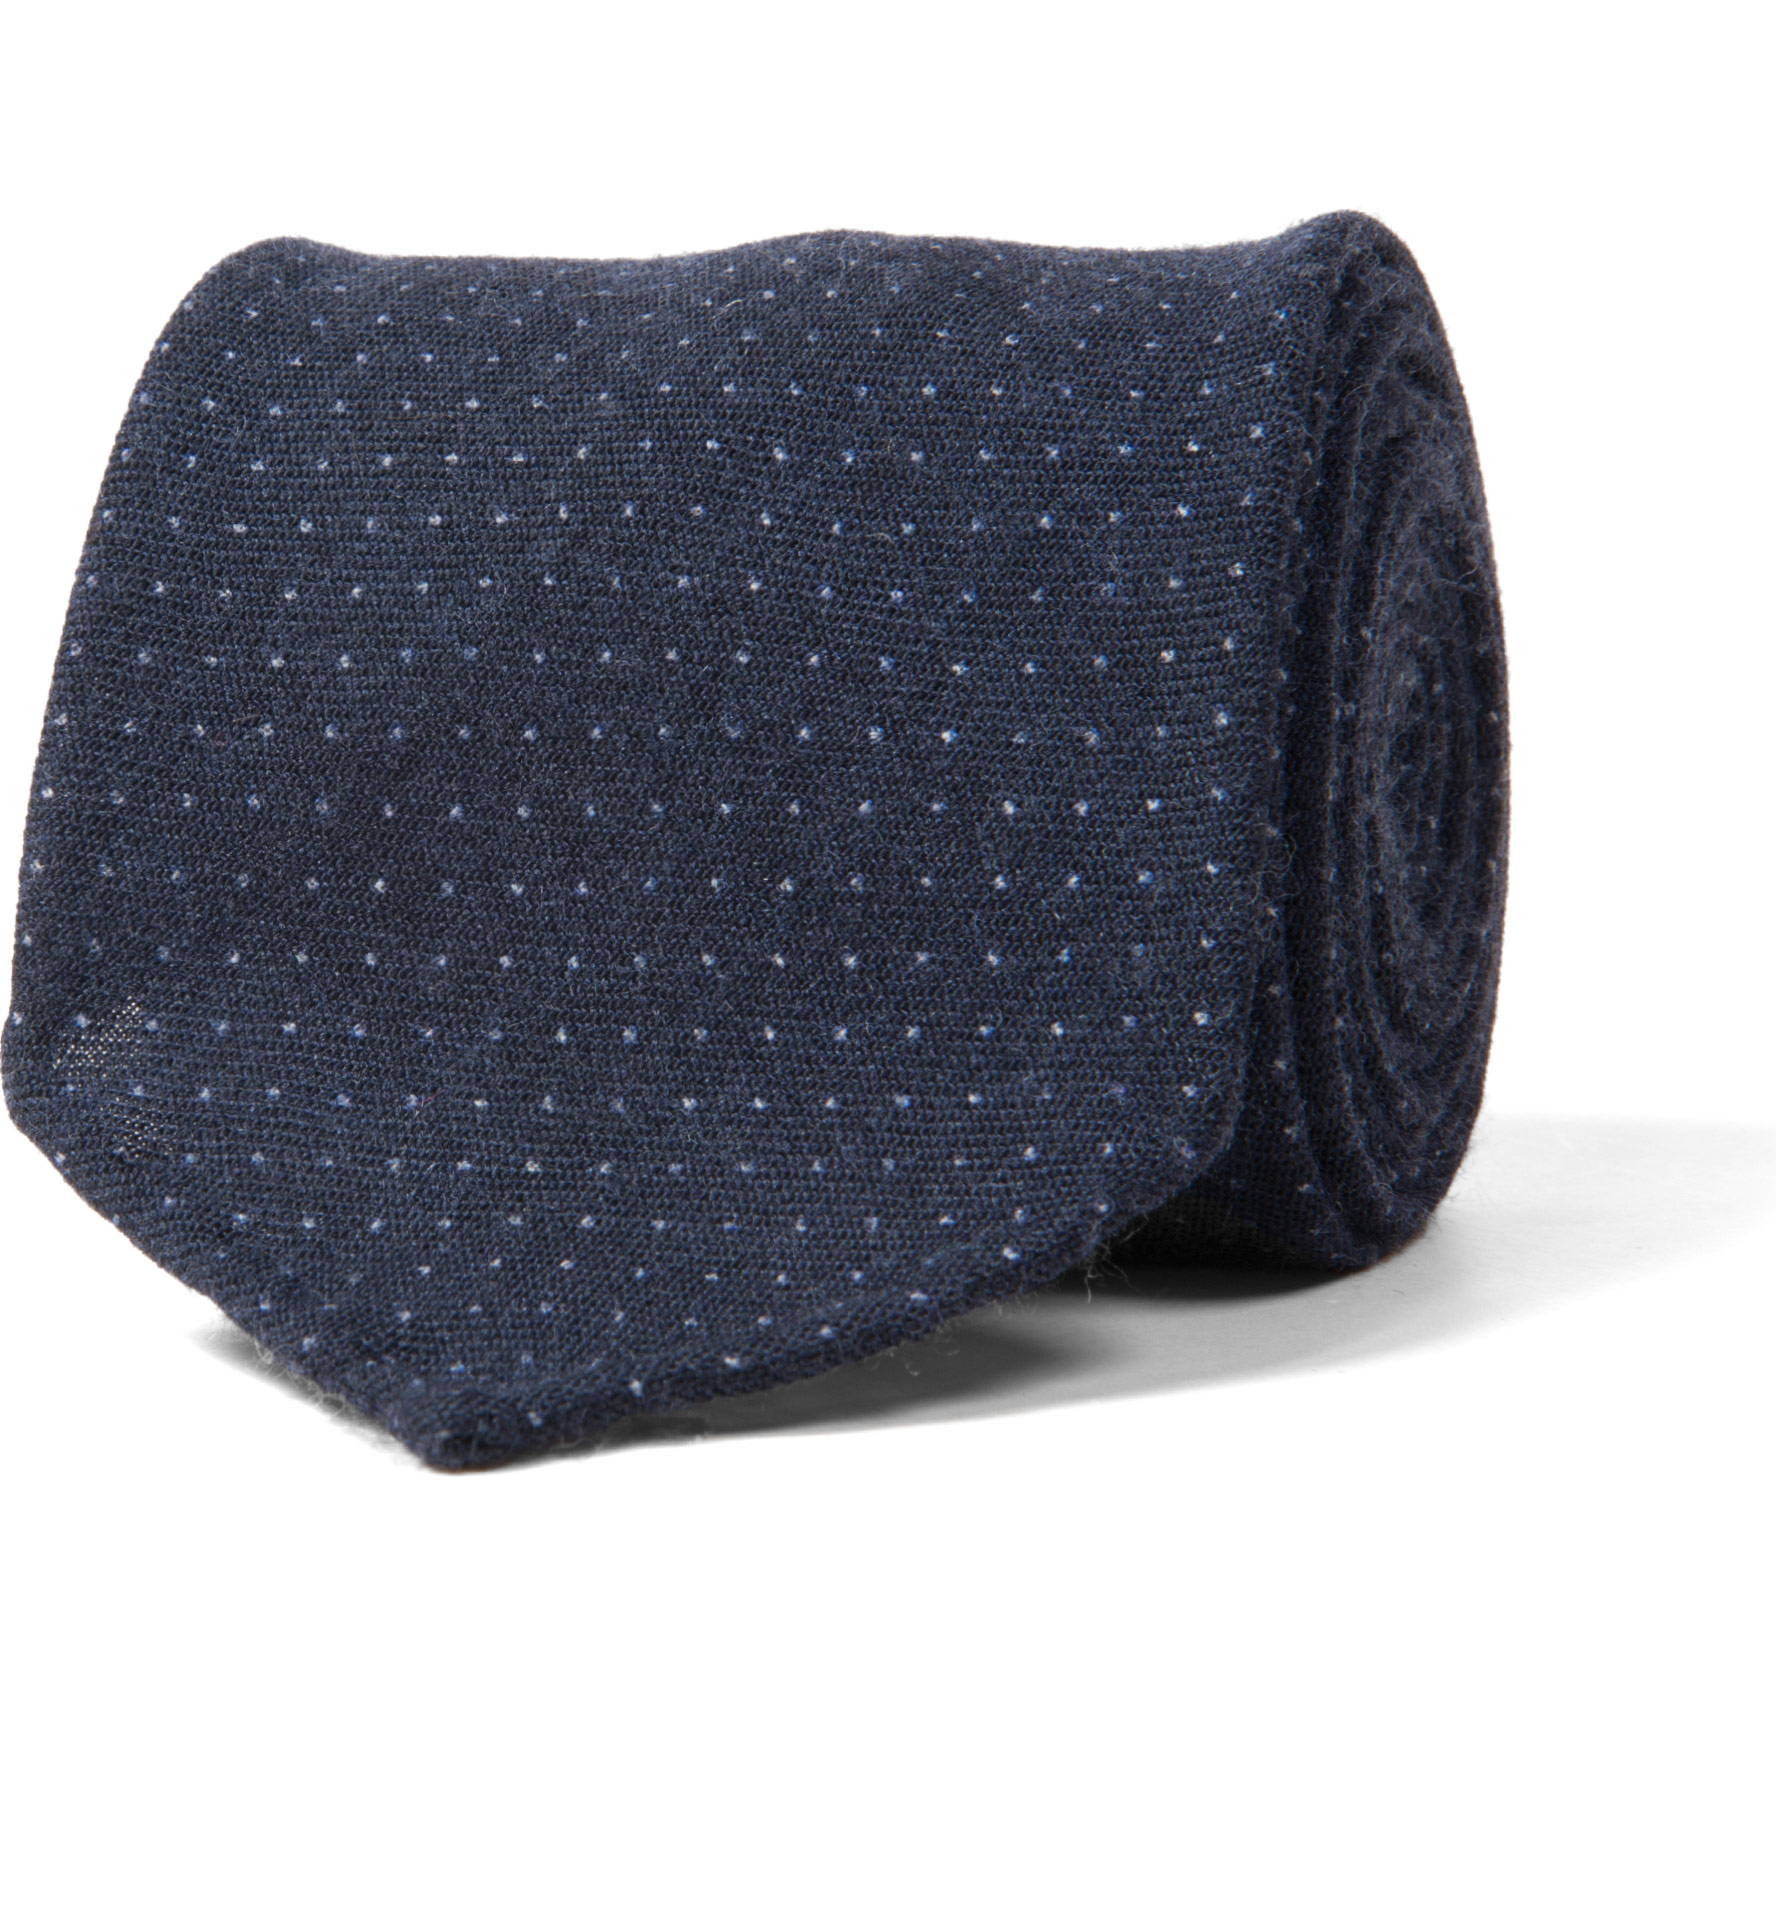 Zoom Image of Biella Navy Wool Pinpoint Tie